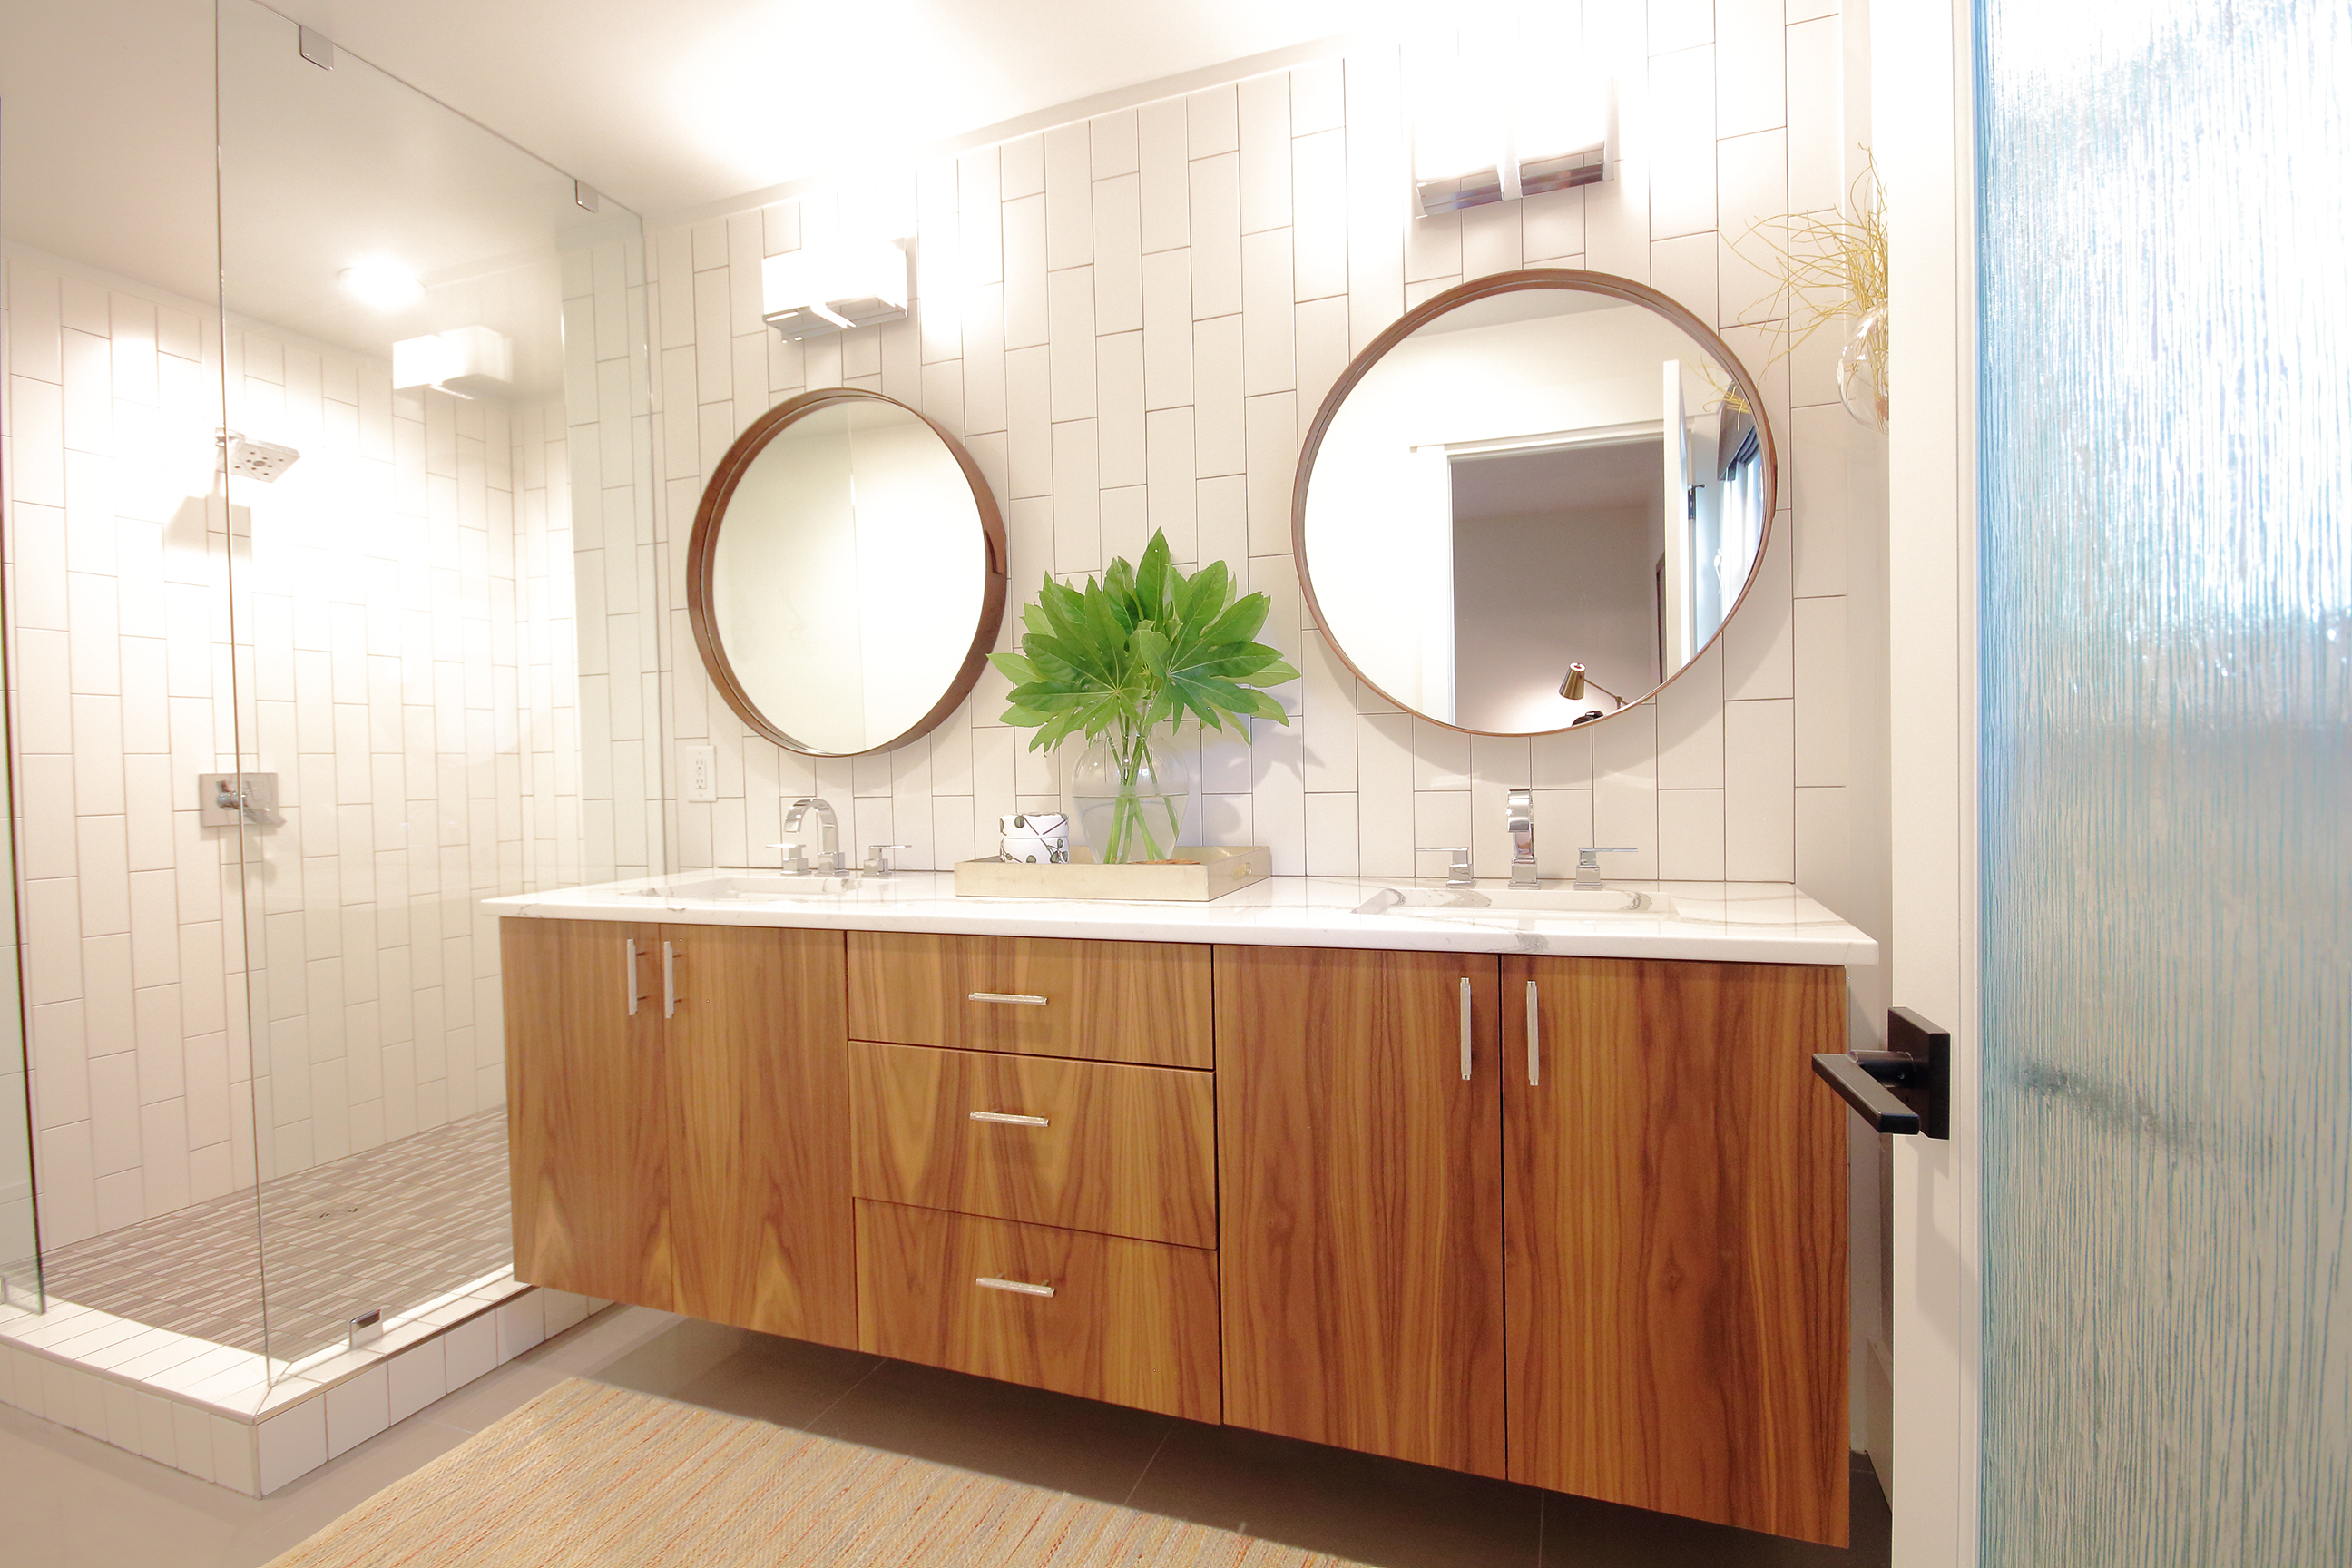 remodeled bathroom with wooden cabinets and circular mirrors